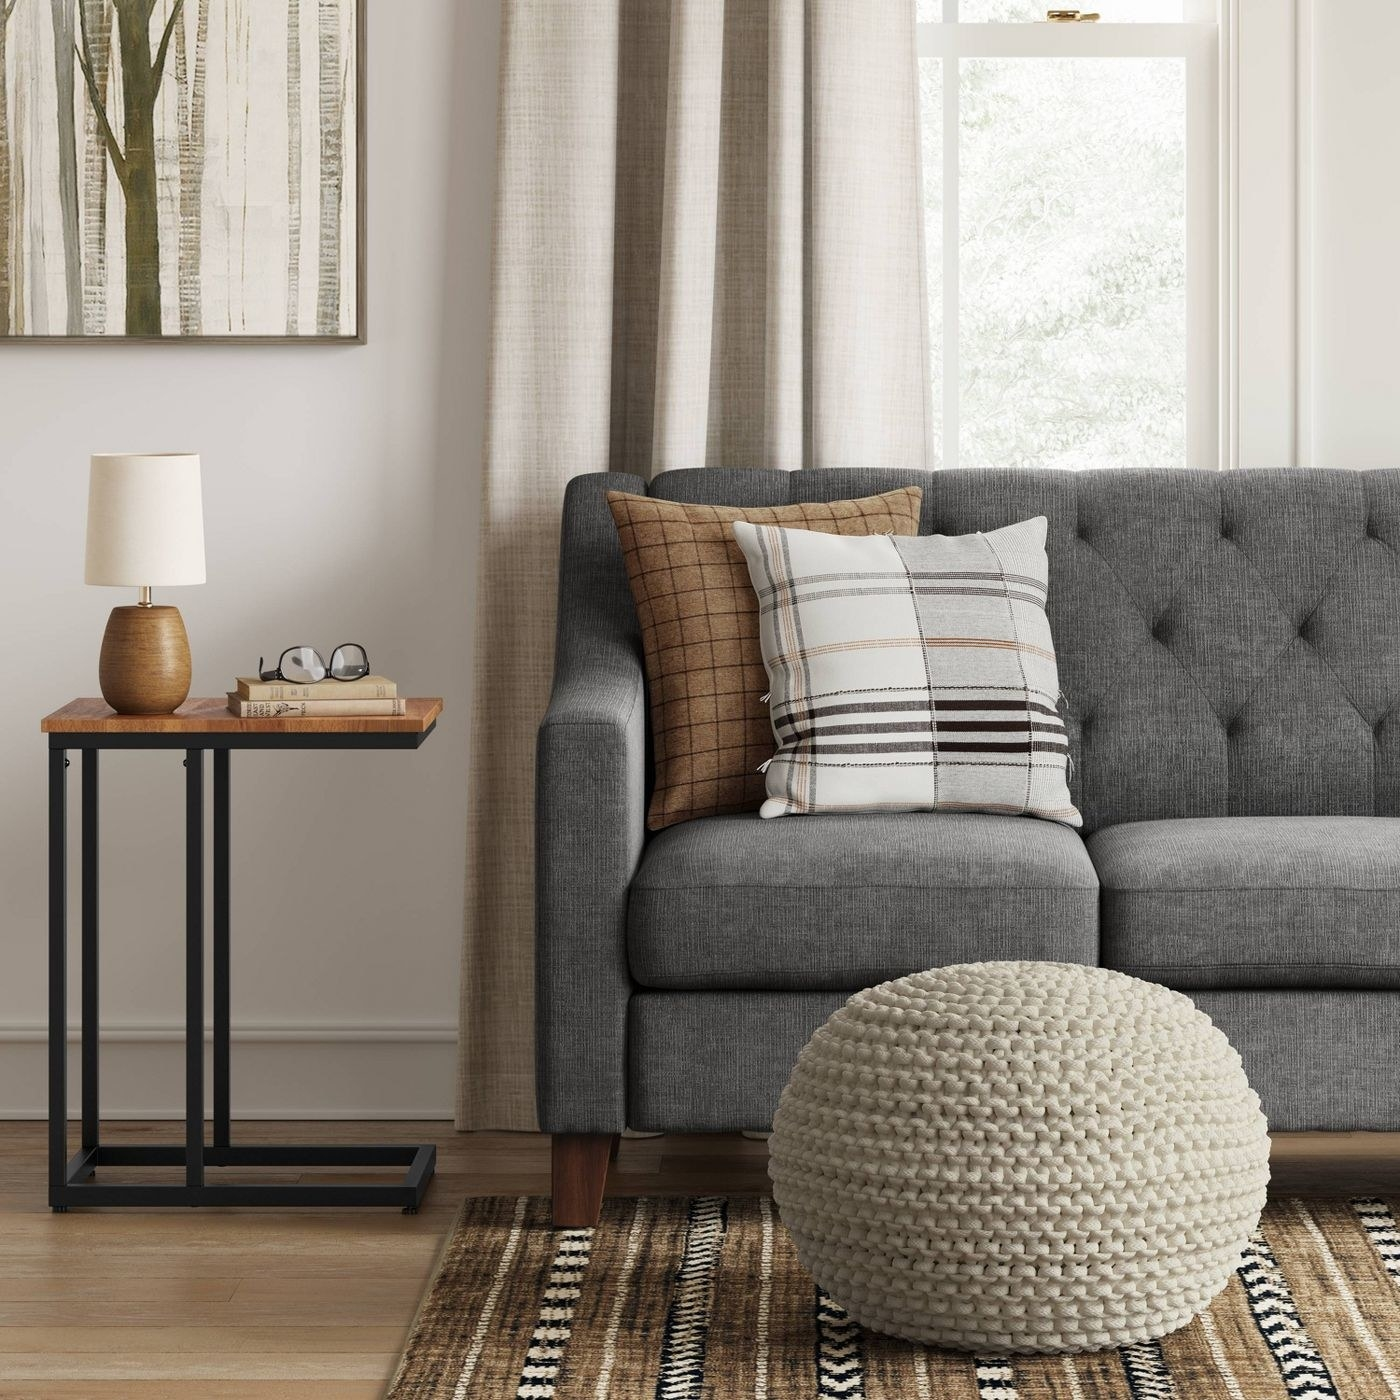 A chunky knit pouf in a living room